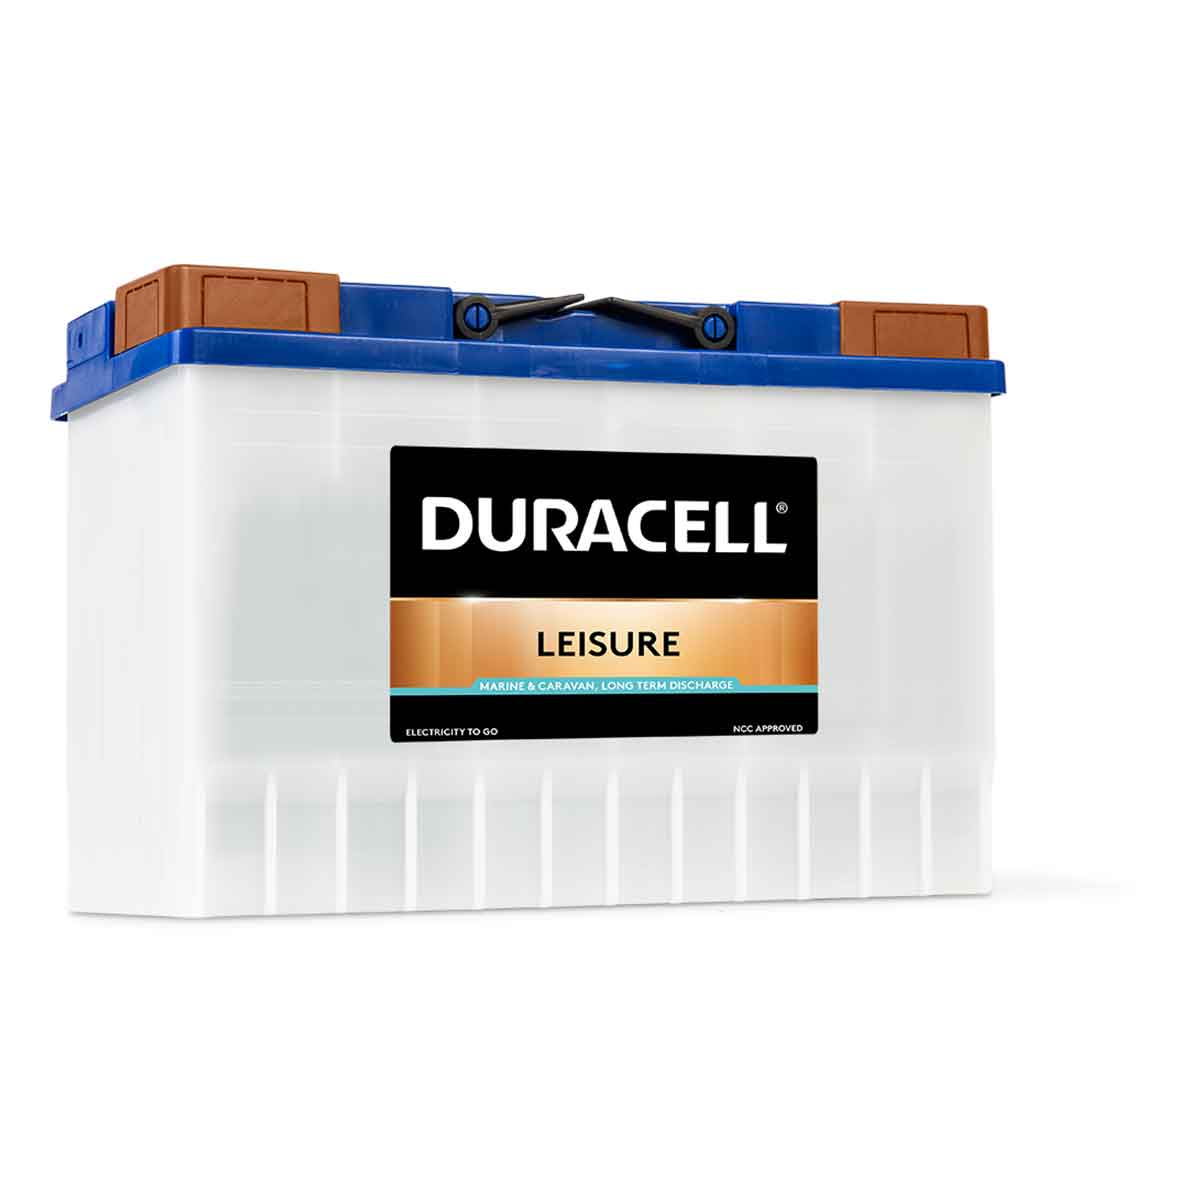 Duracell-Leisure-Battery.jpg